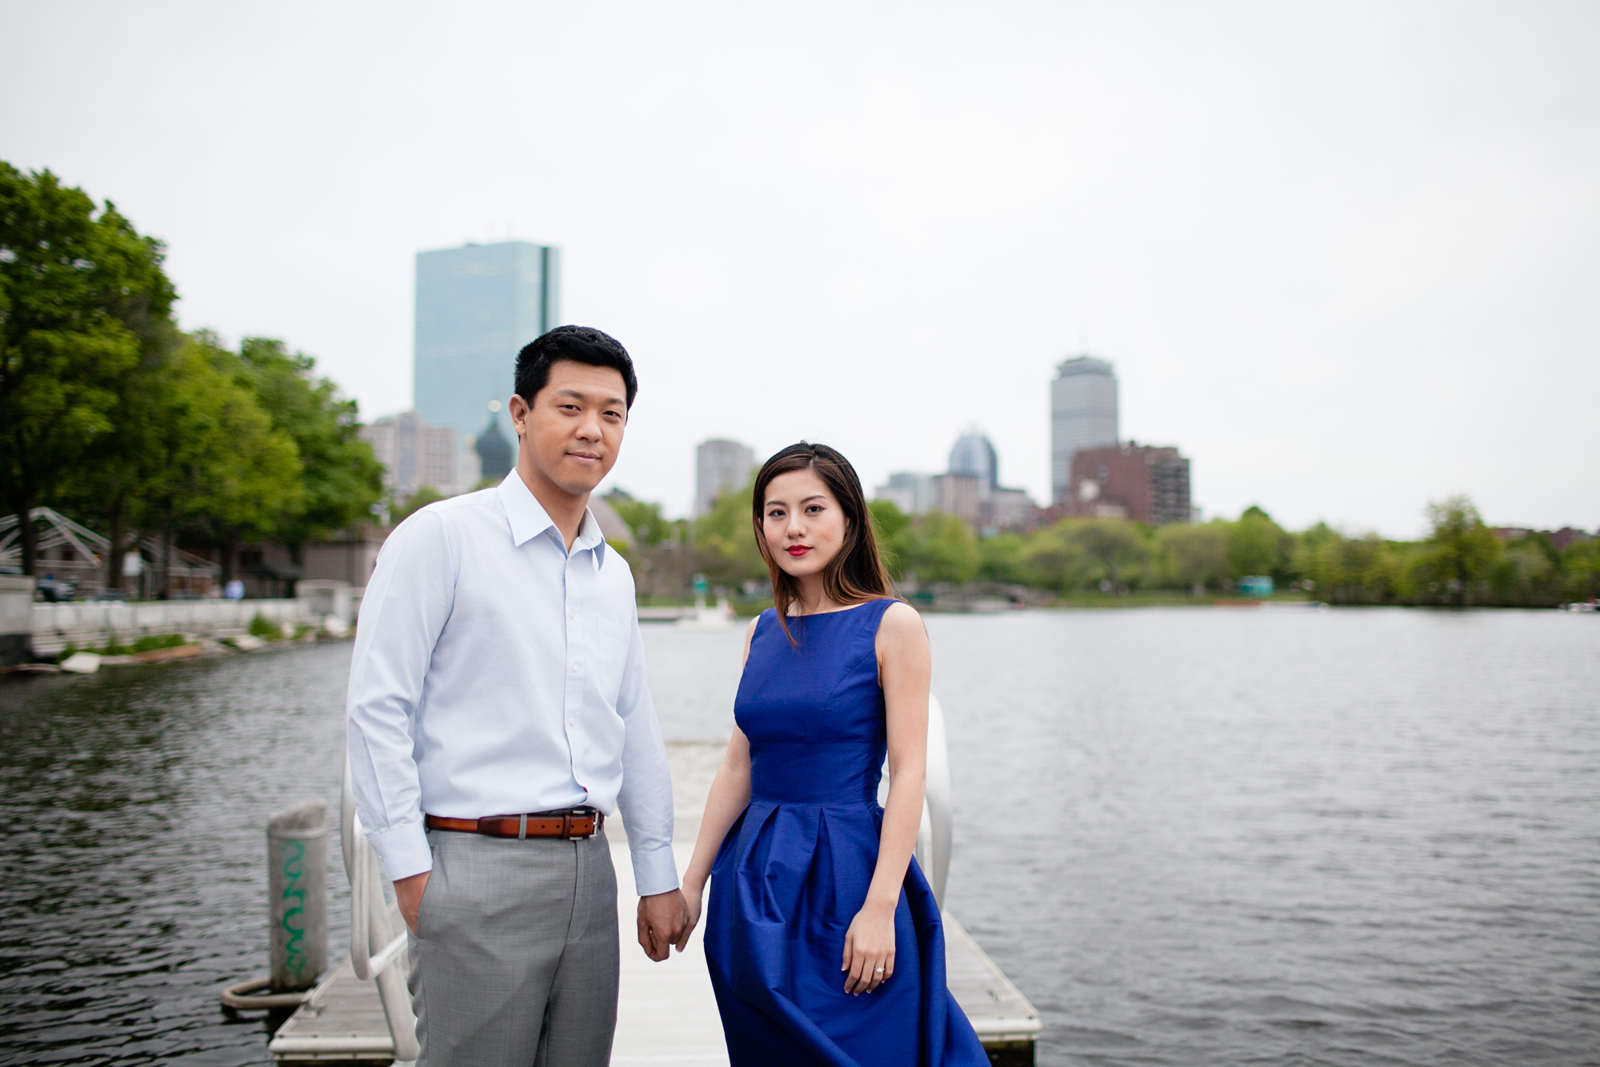 014-beacon-hill-boston-engagement